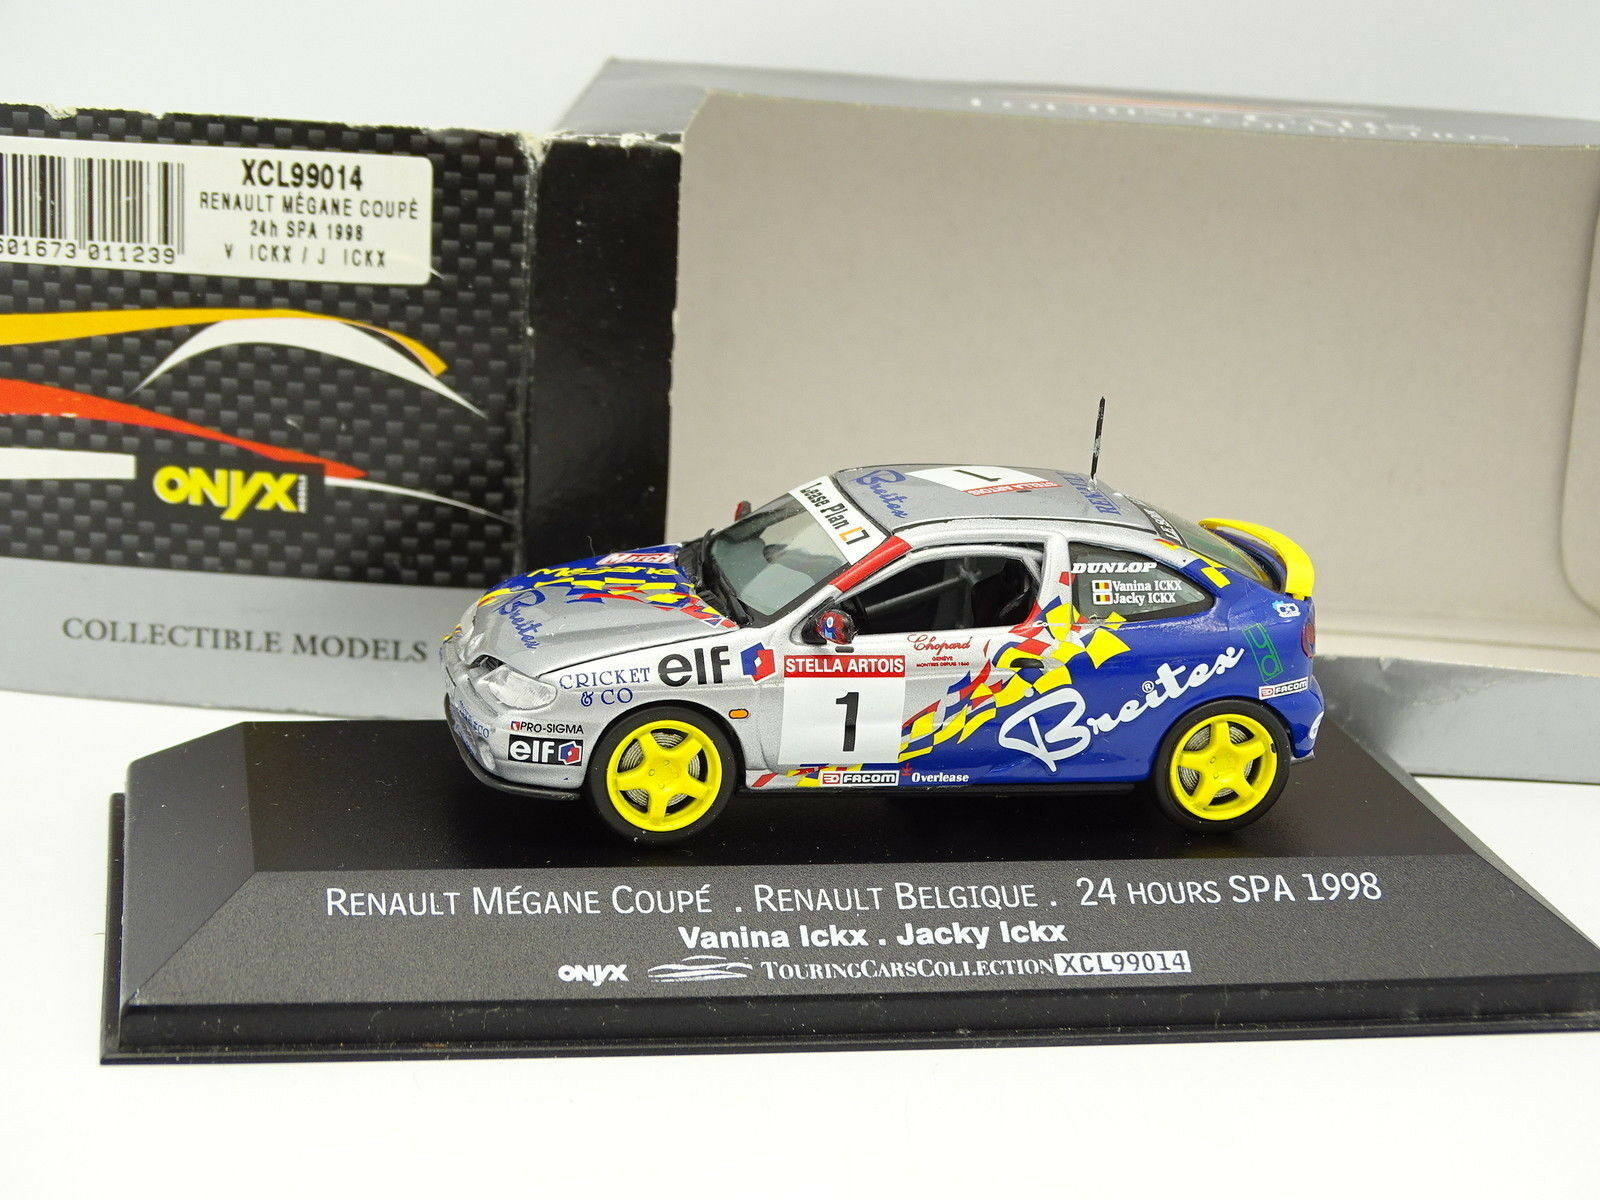 Onyx 1 43 - renault megane coupe 24h spa 1998 curves